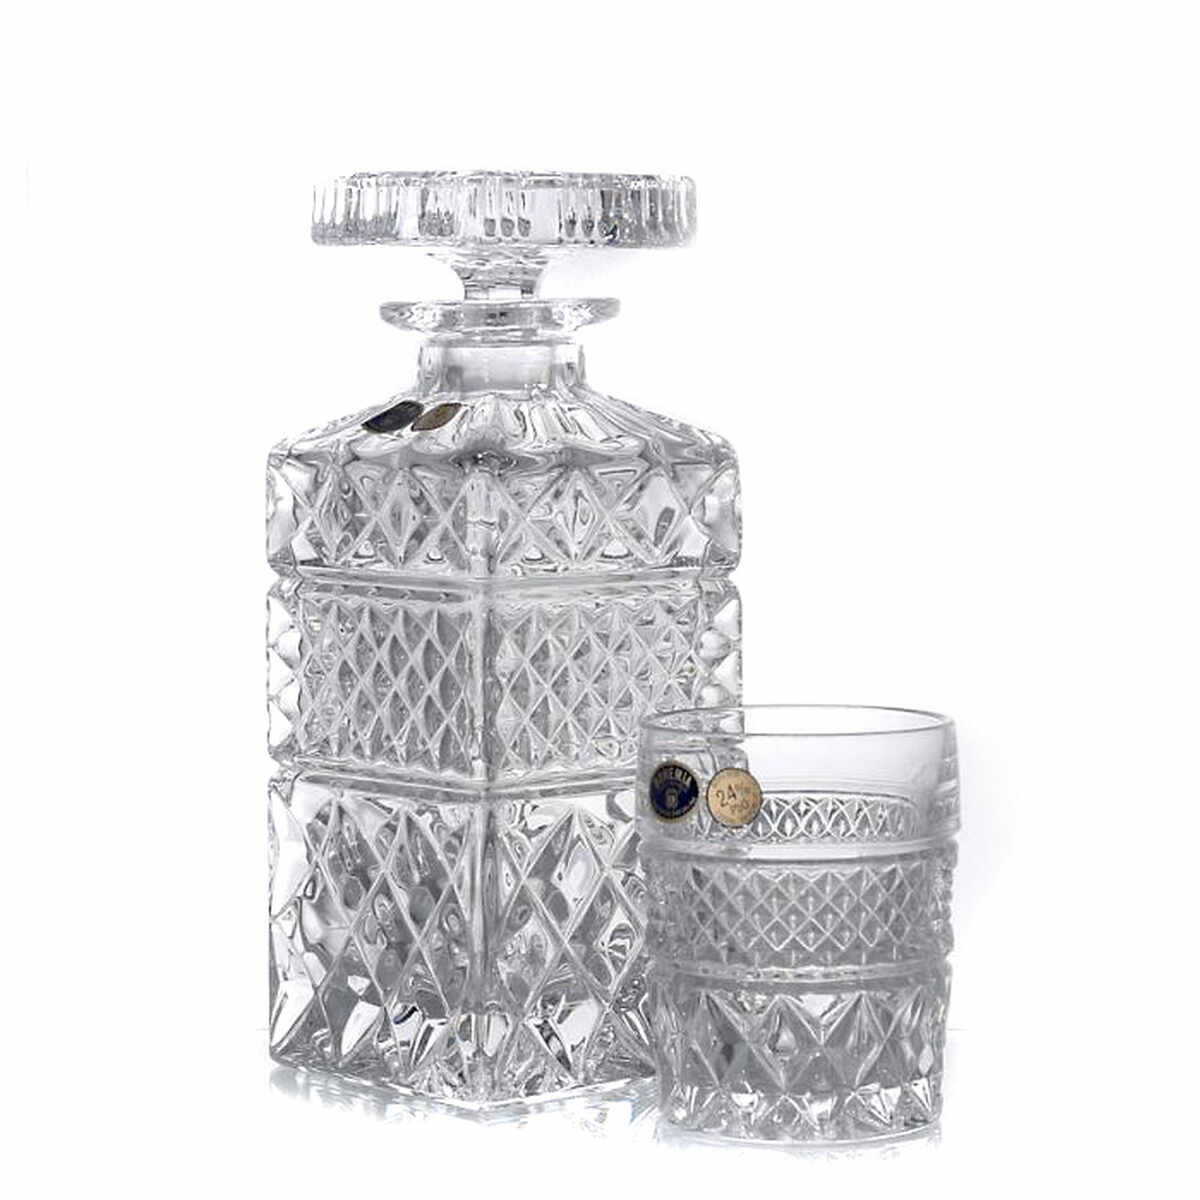 MADISON Set 6 pahare si decantor cristal whisky la pret 295.9 lei